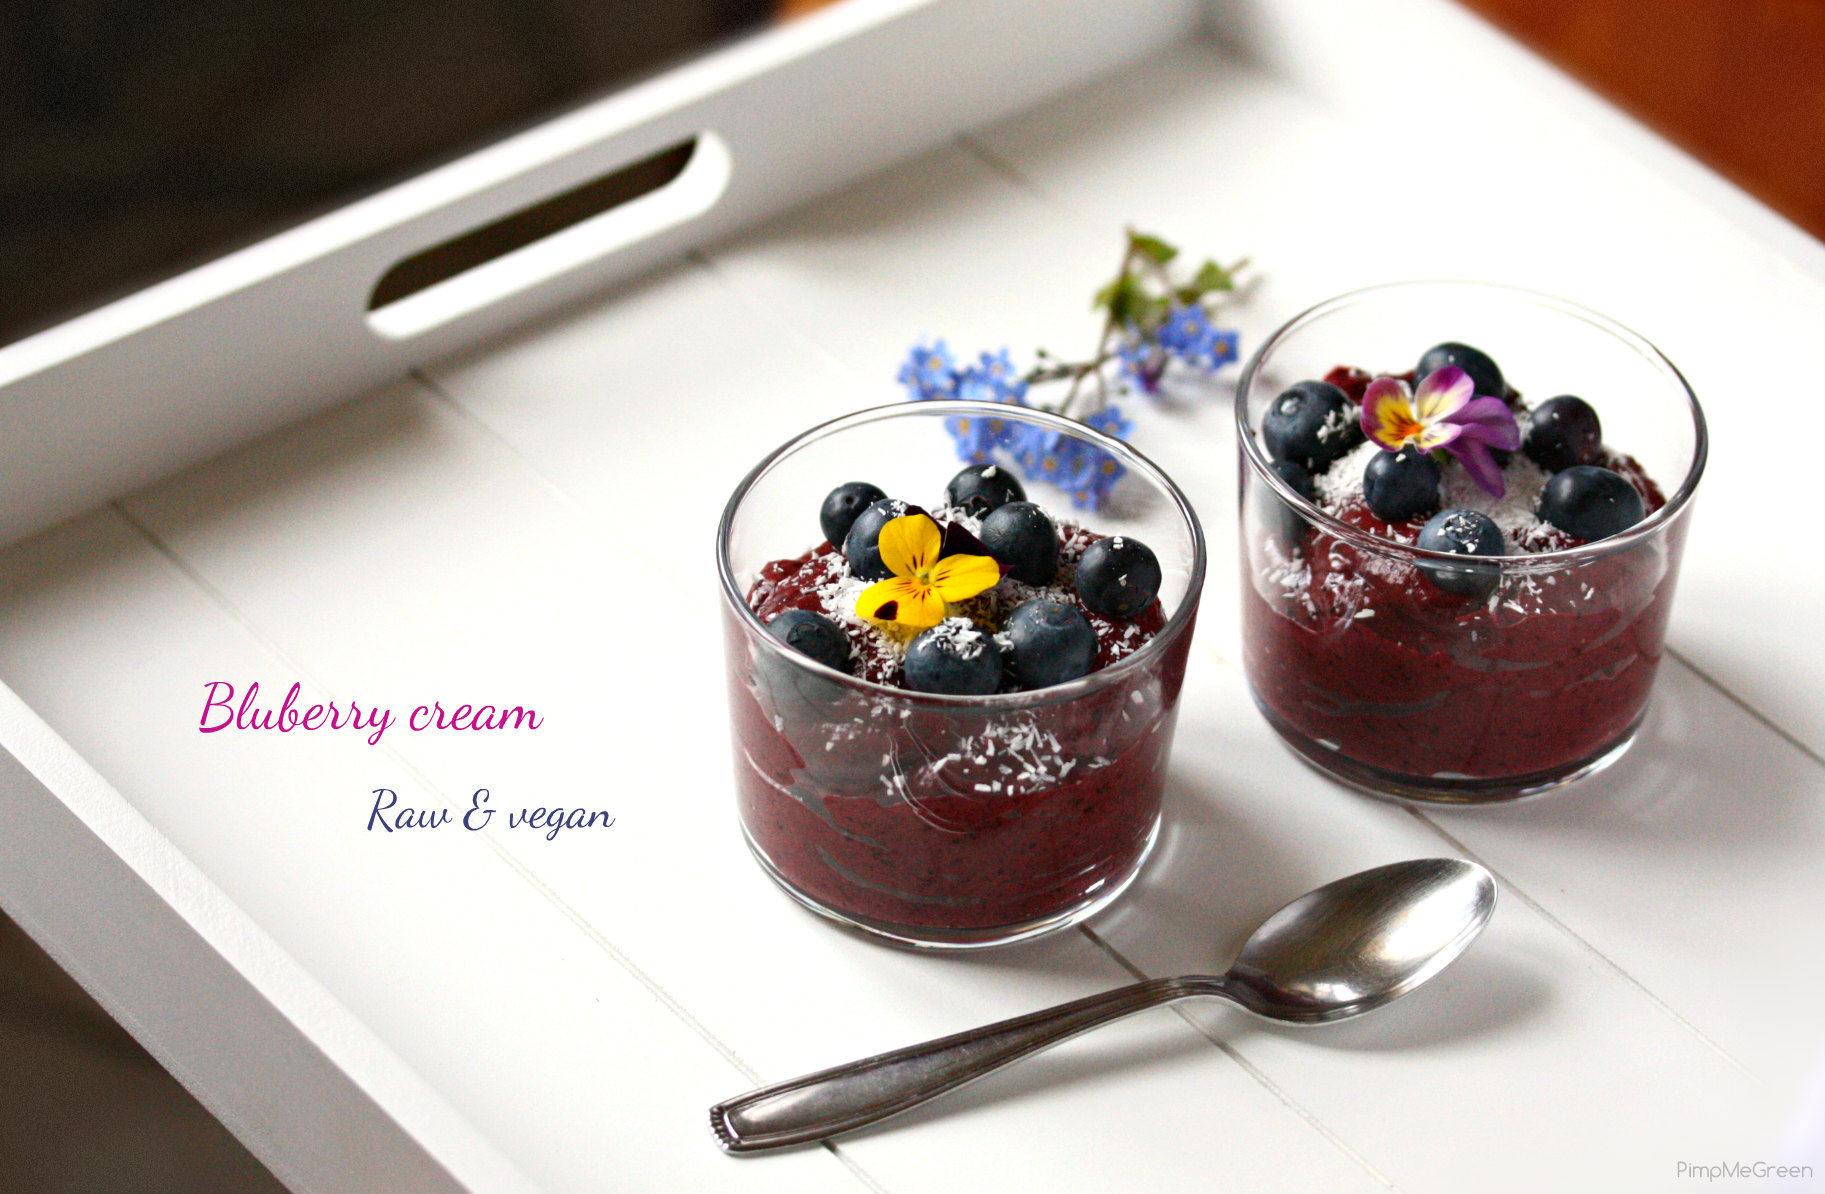 Blueberry cream dessert 5 titled